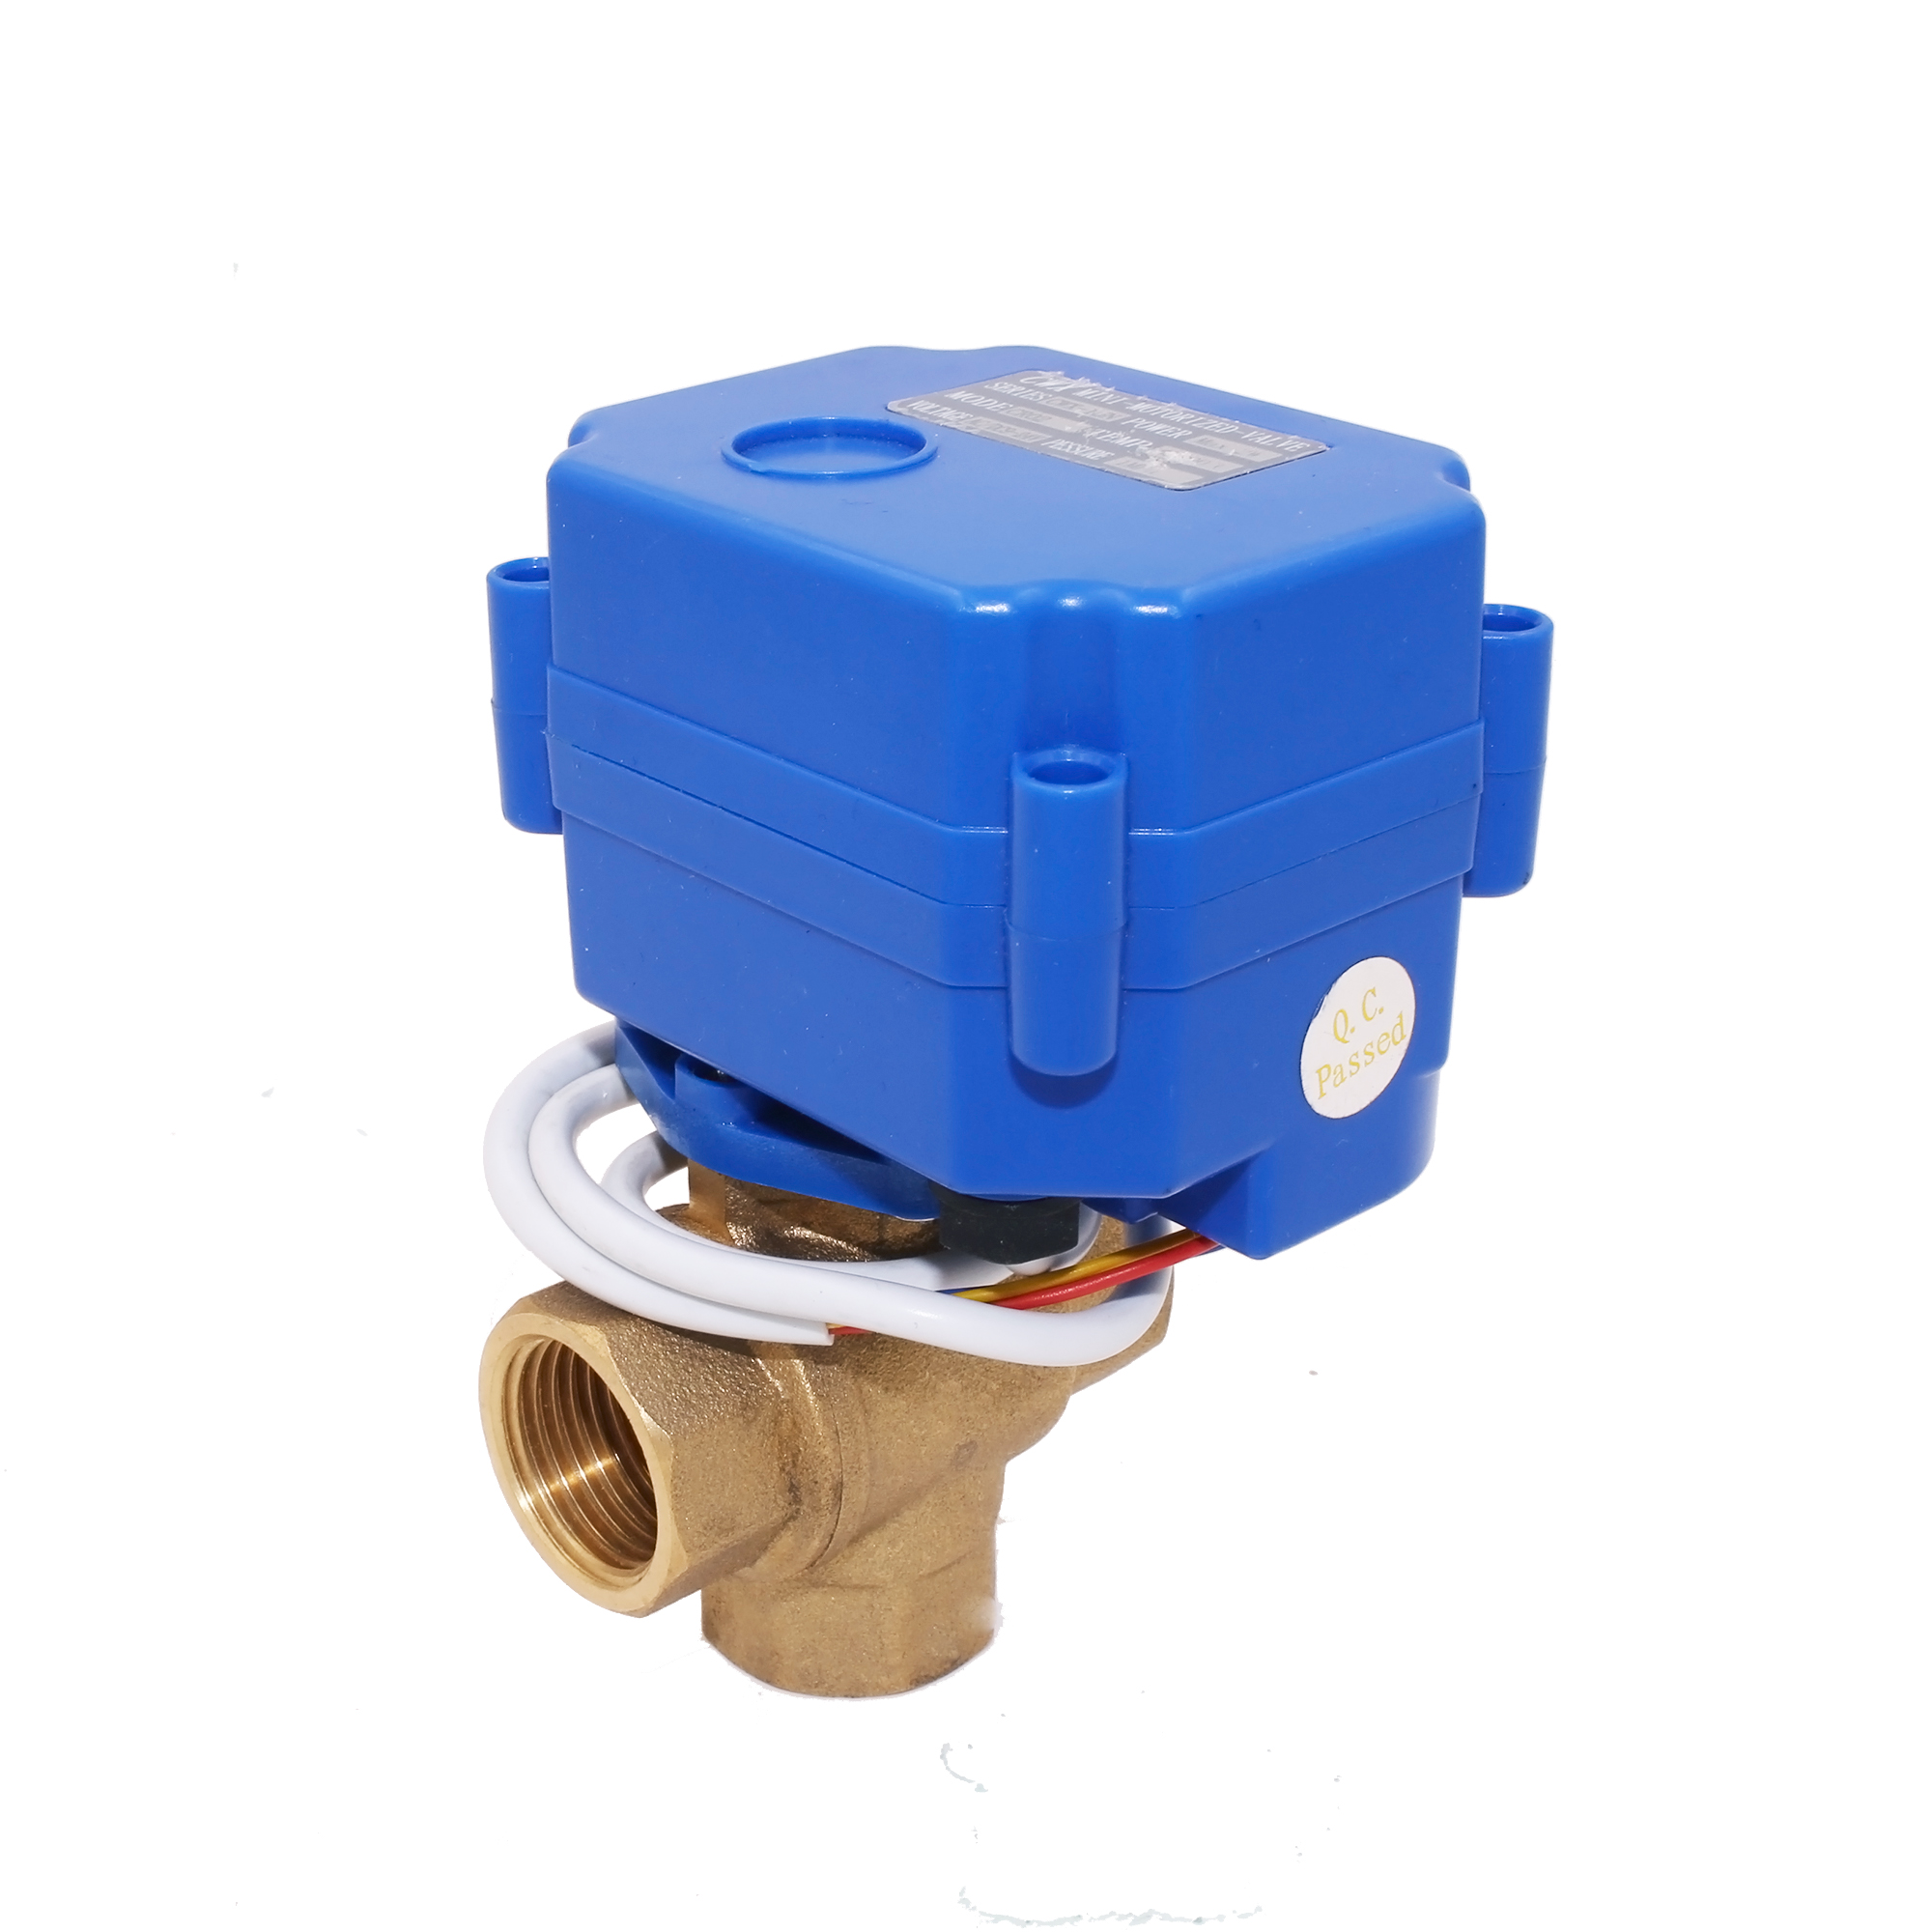 CWX-15N/<strong>Q</strong> 1/2'' 1/4'' 1'' DC3-6V 9-24V AC85-220V Electric ball valve For Water Control equipment and project and irrigation